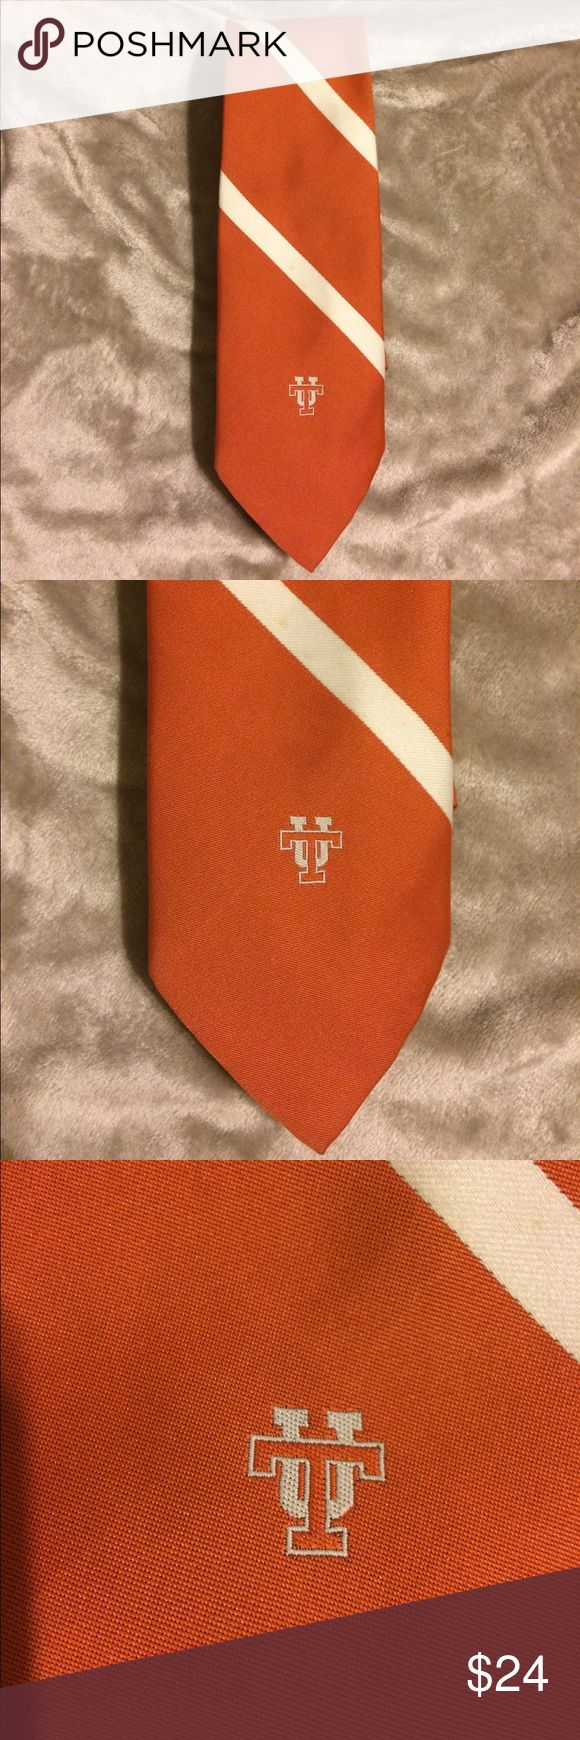 University of Tennessee neck tie London 400 EUC Beautiful neck tie by London 400 By Cambridge Apparel Baltimore, MD. Collegiate Licensing Company. Orange & white with the UT at the bottom. Excellent condition. I live to bundle and have more ties listed as well as another UT tie that plays Rocky Top.  Bin Z London 400 Accessories Ties